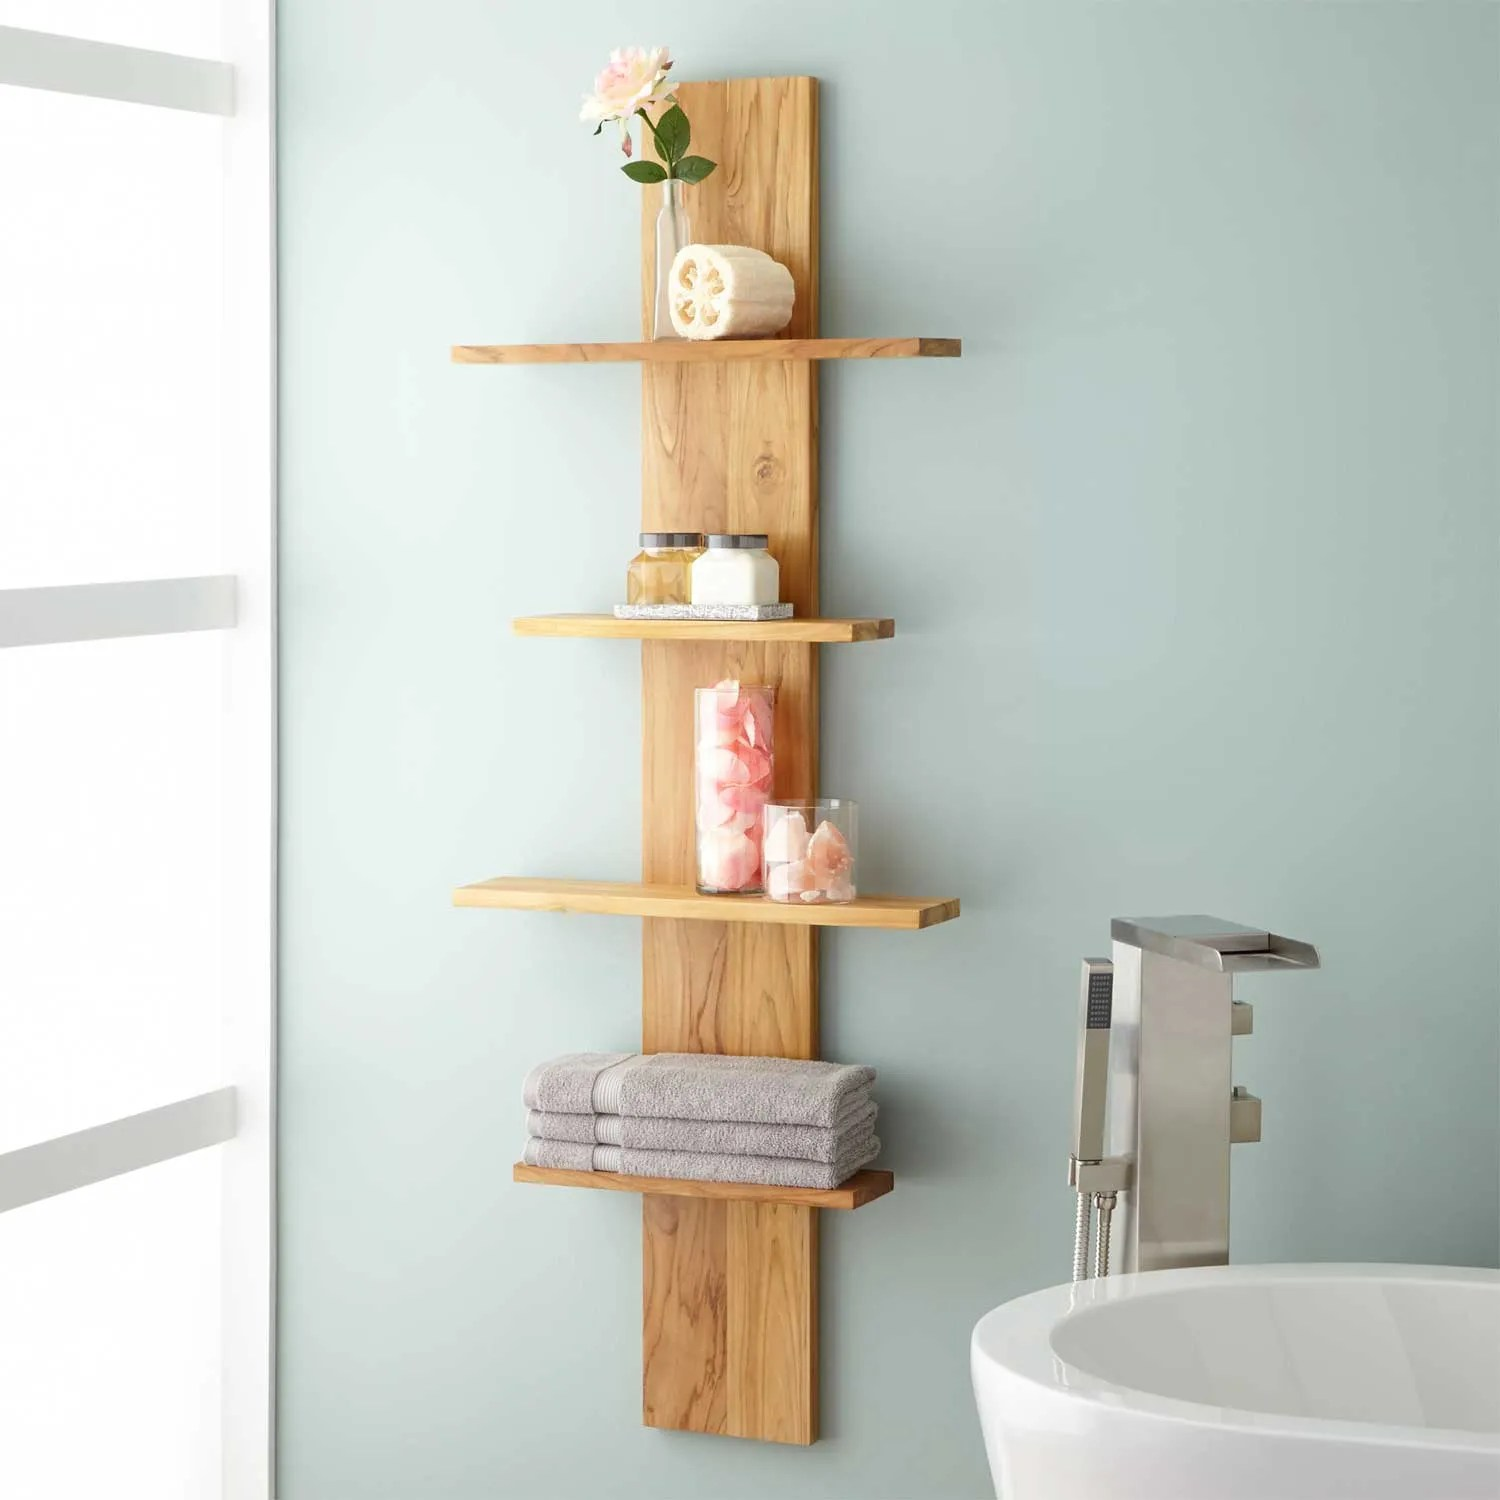 Fullsize Of Bathroom Wall Shelf